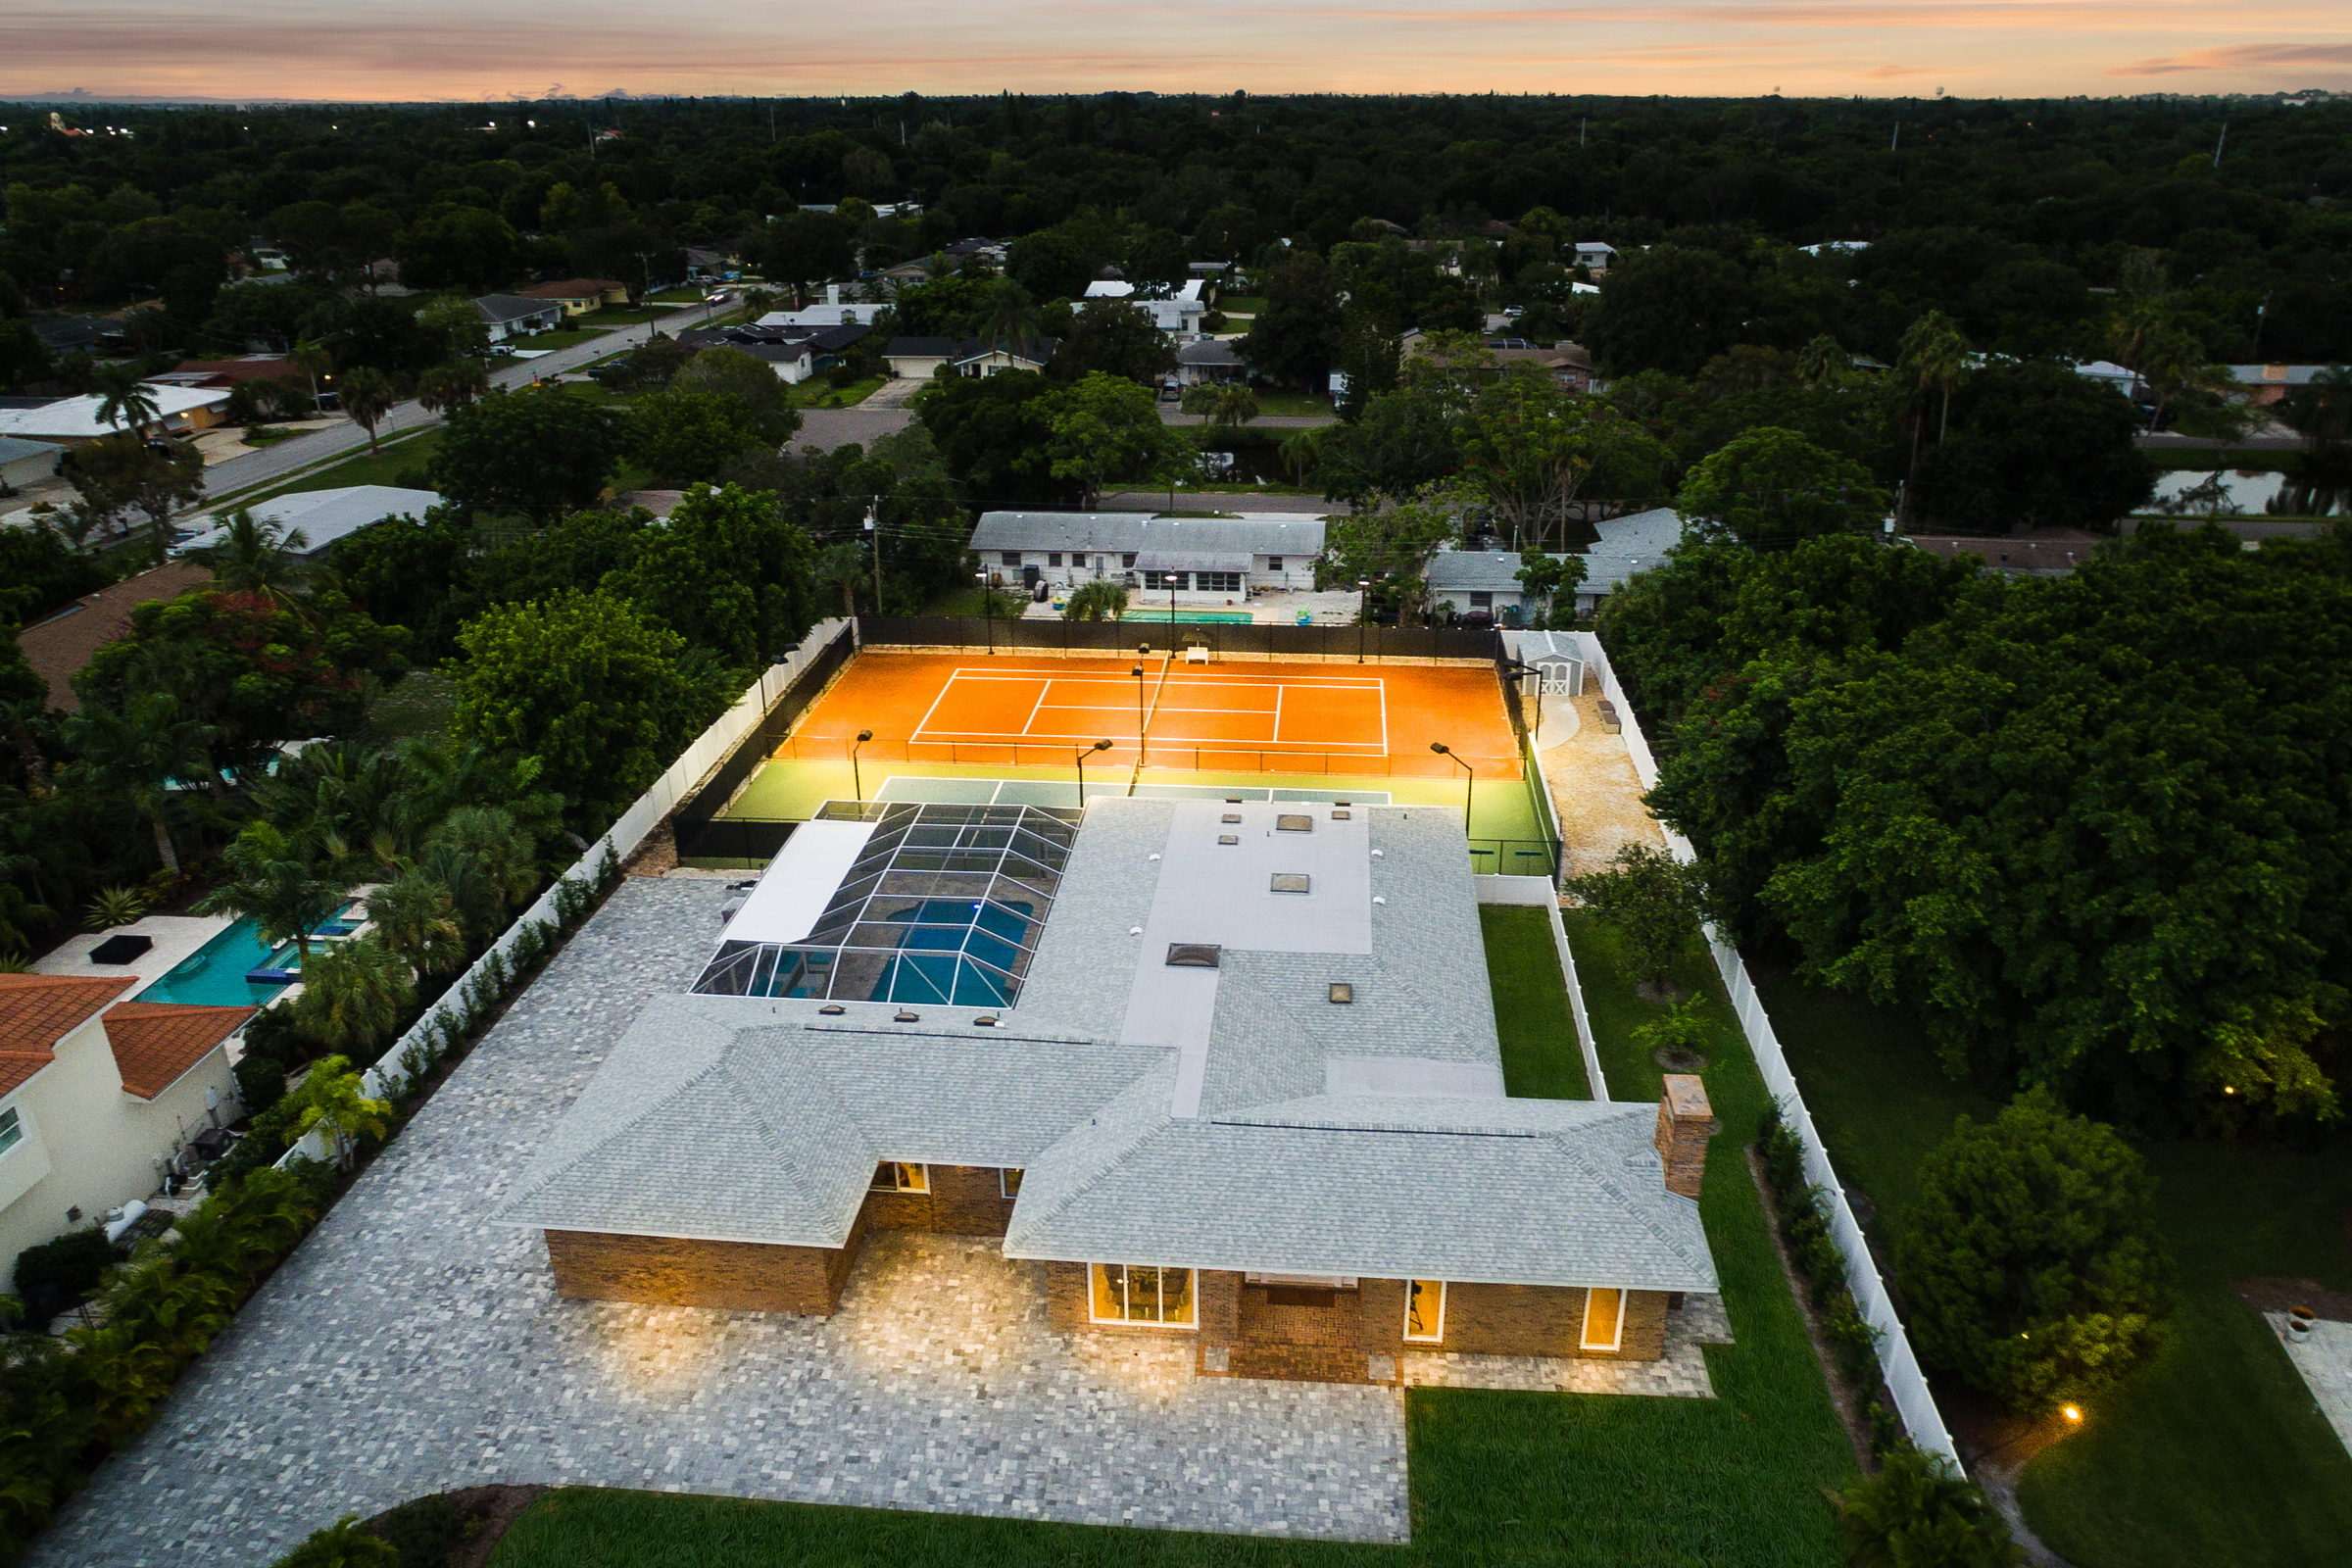 This Florida home boasts design and technology features that range from eco-friendly hardwood flooring throughout, to all new LED light fixtures.